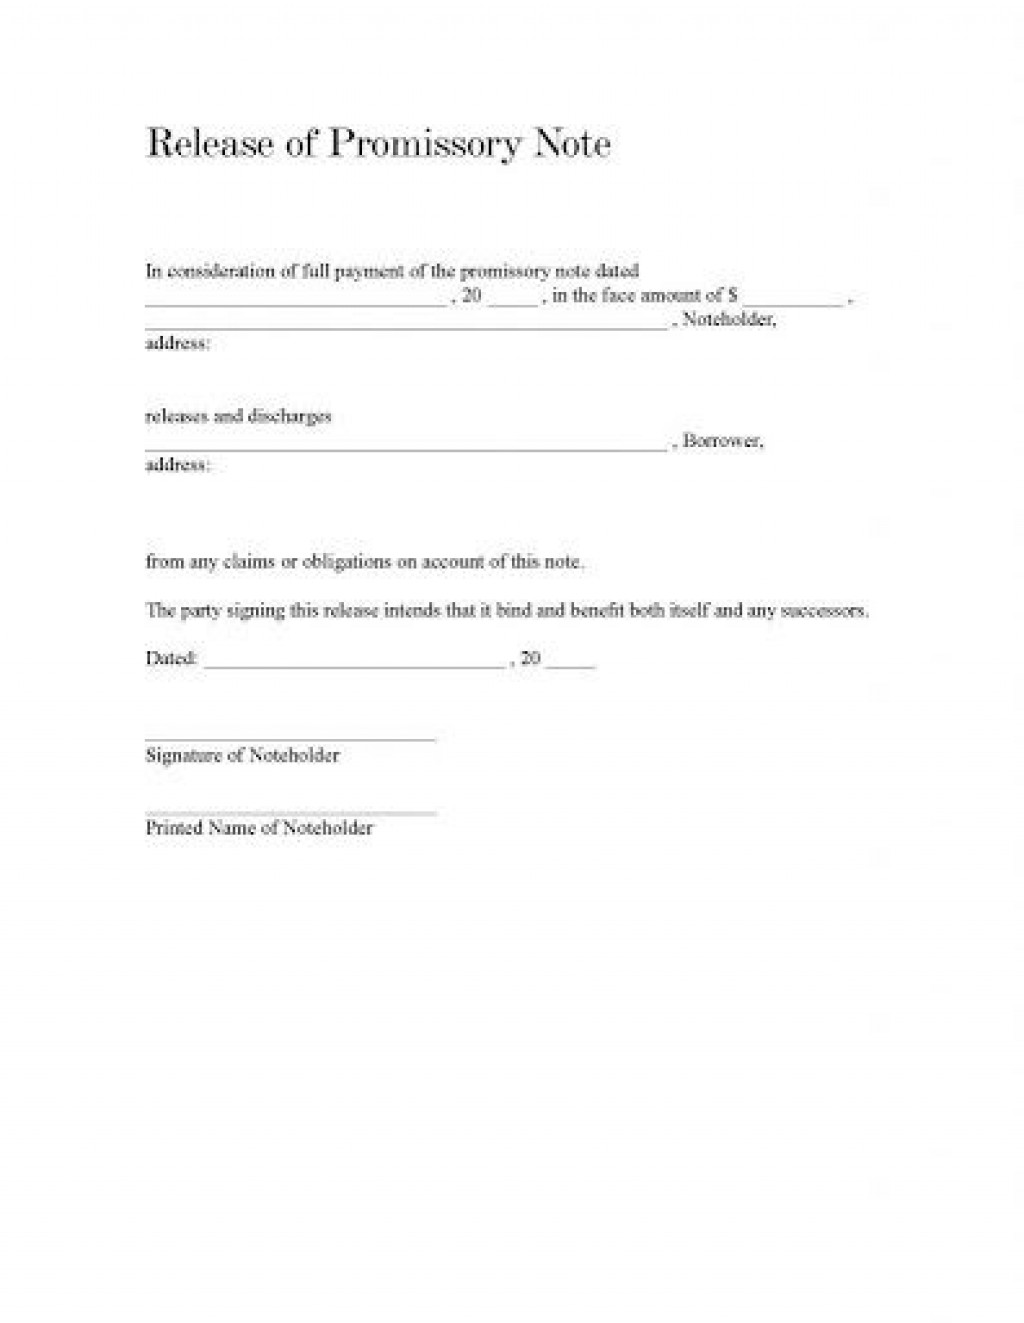 009 Best Loan Promissory Note Template Concept  Family Busines Format For HandLarge